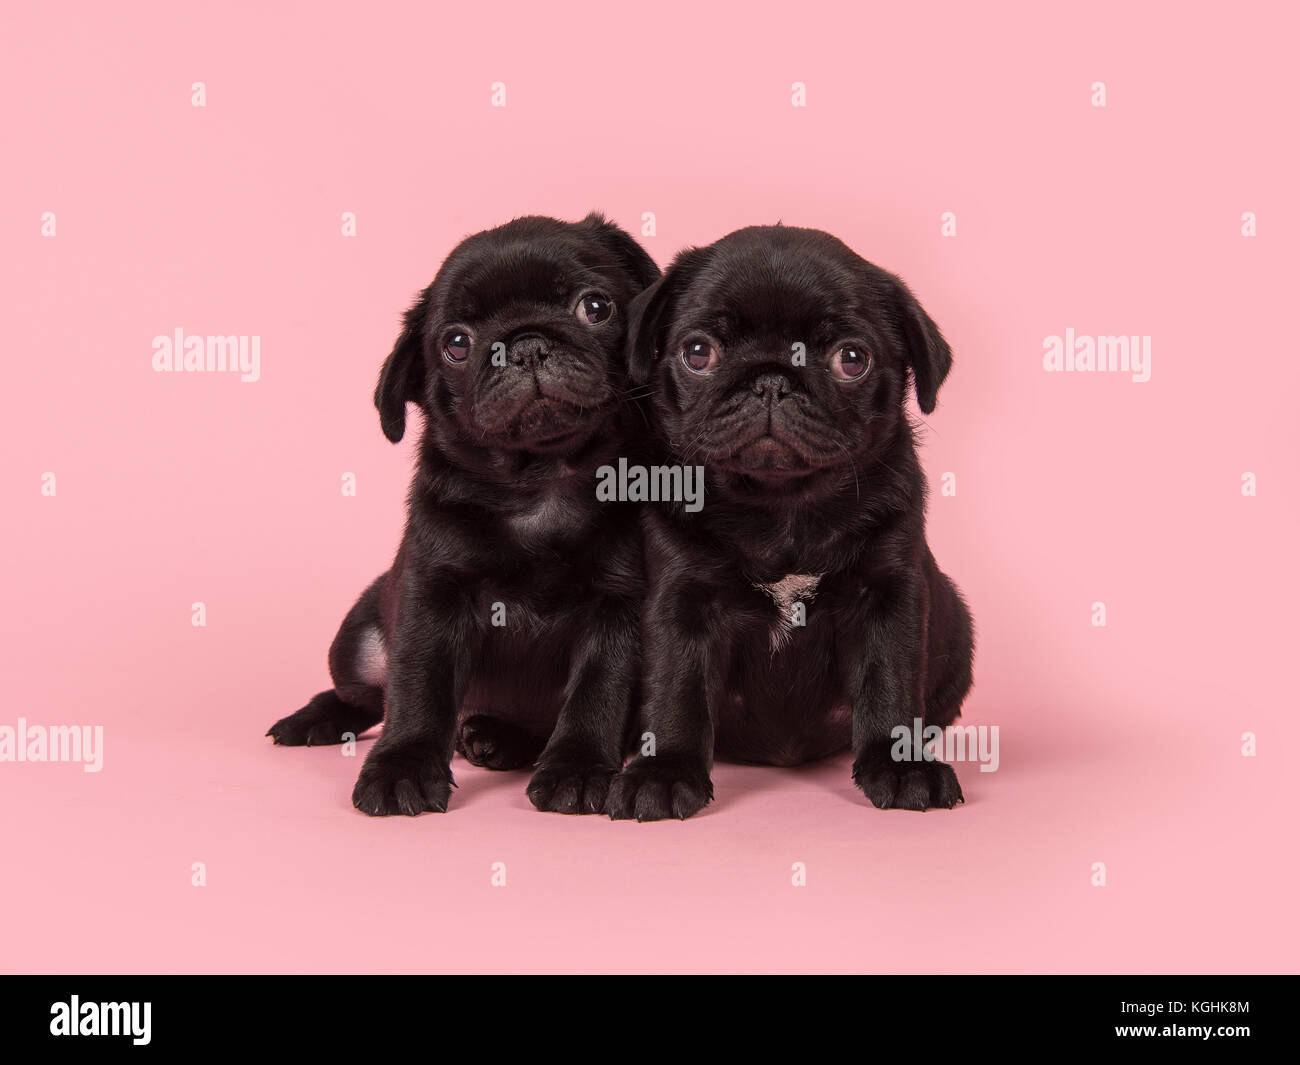 Two cute black pug puppies looking at the camera sitting on a pink background - Stock Image